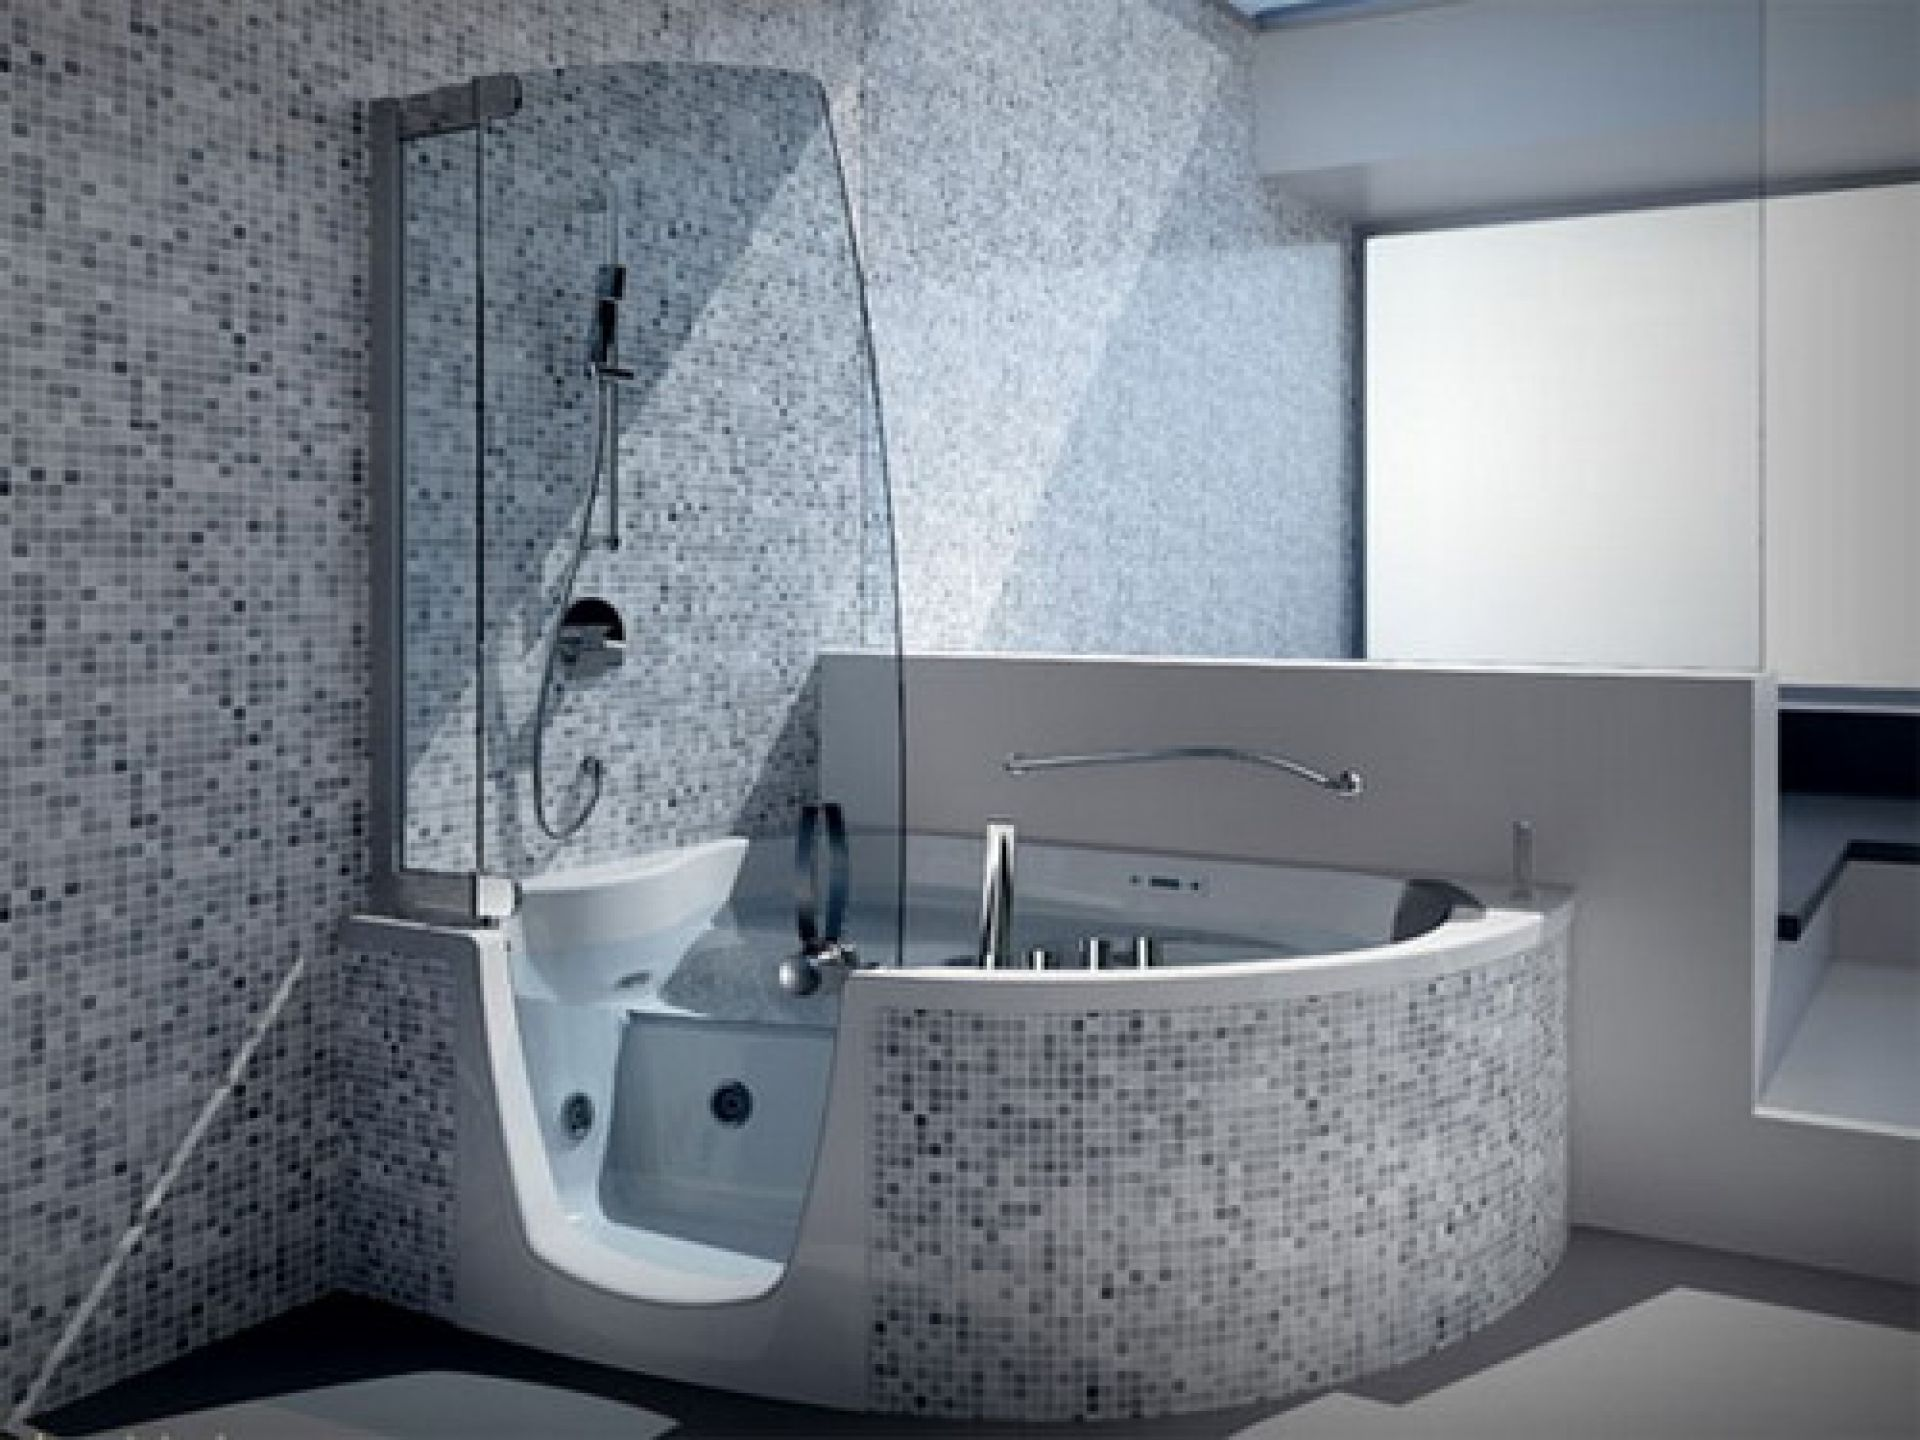 Cool Mini Bathtub Of Fiberglass For Small Spaces Amusing Bathroom